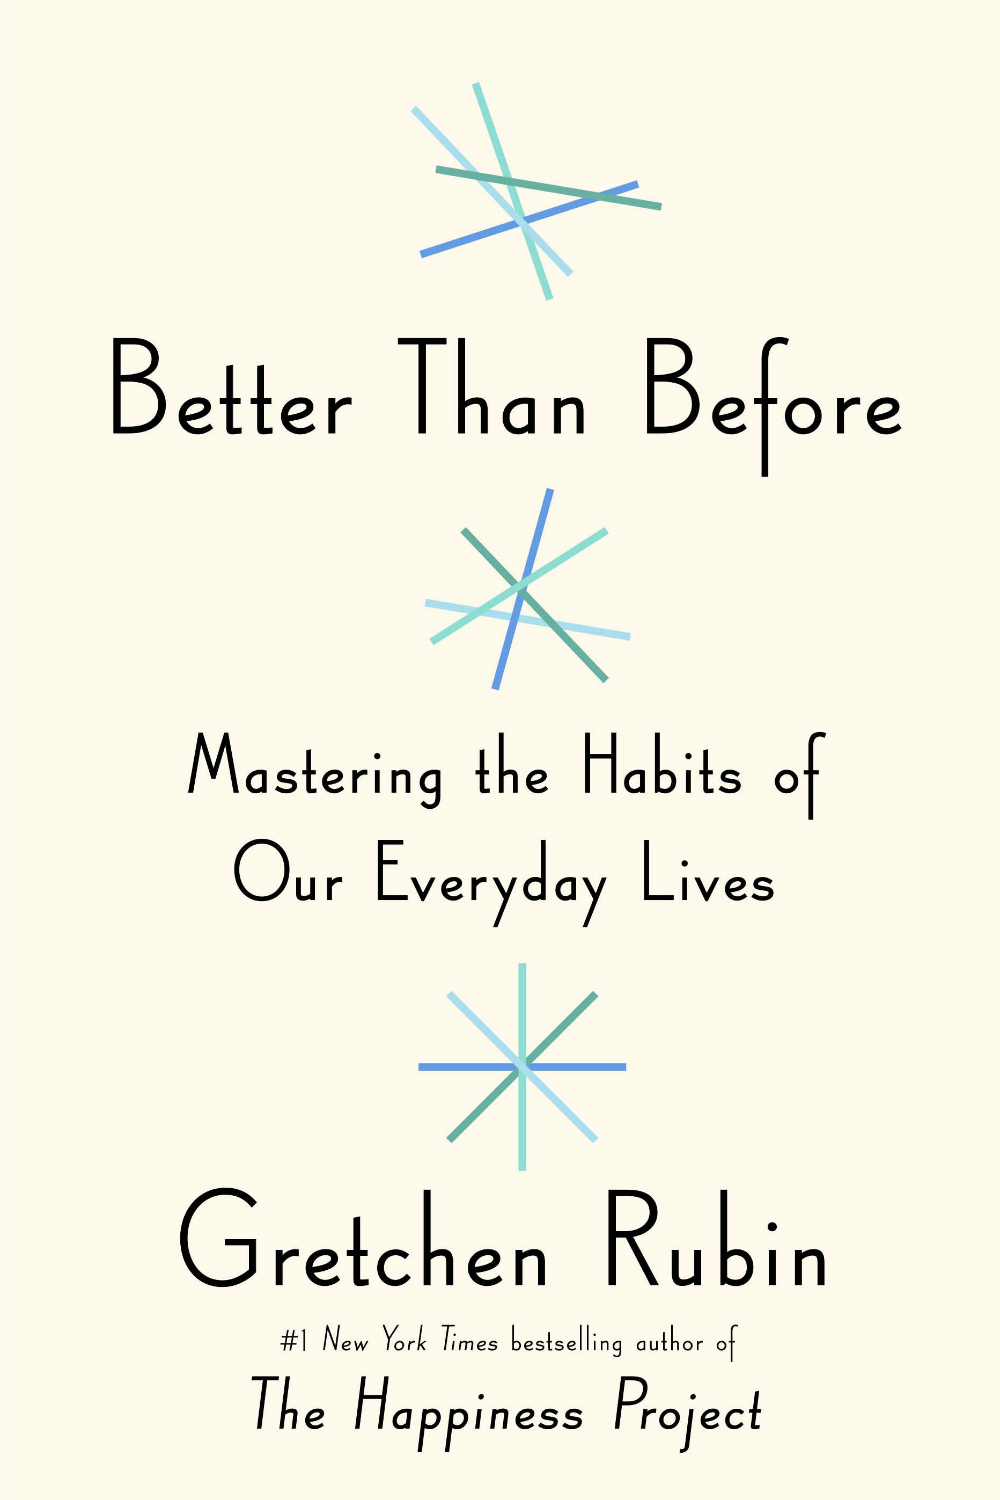 5 Life Lessons From Gretchen Rubin, The Queen Of Self-Help